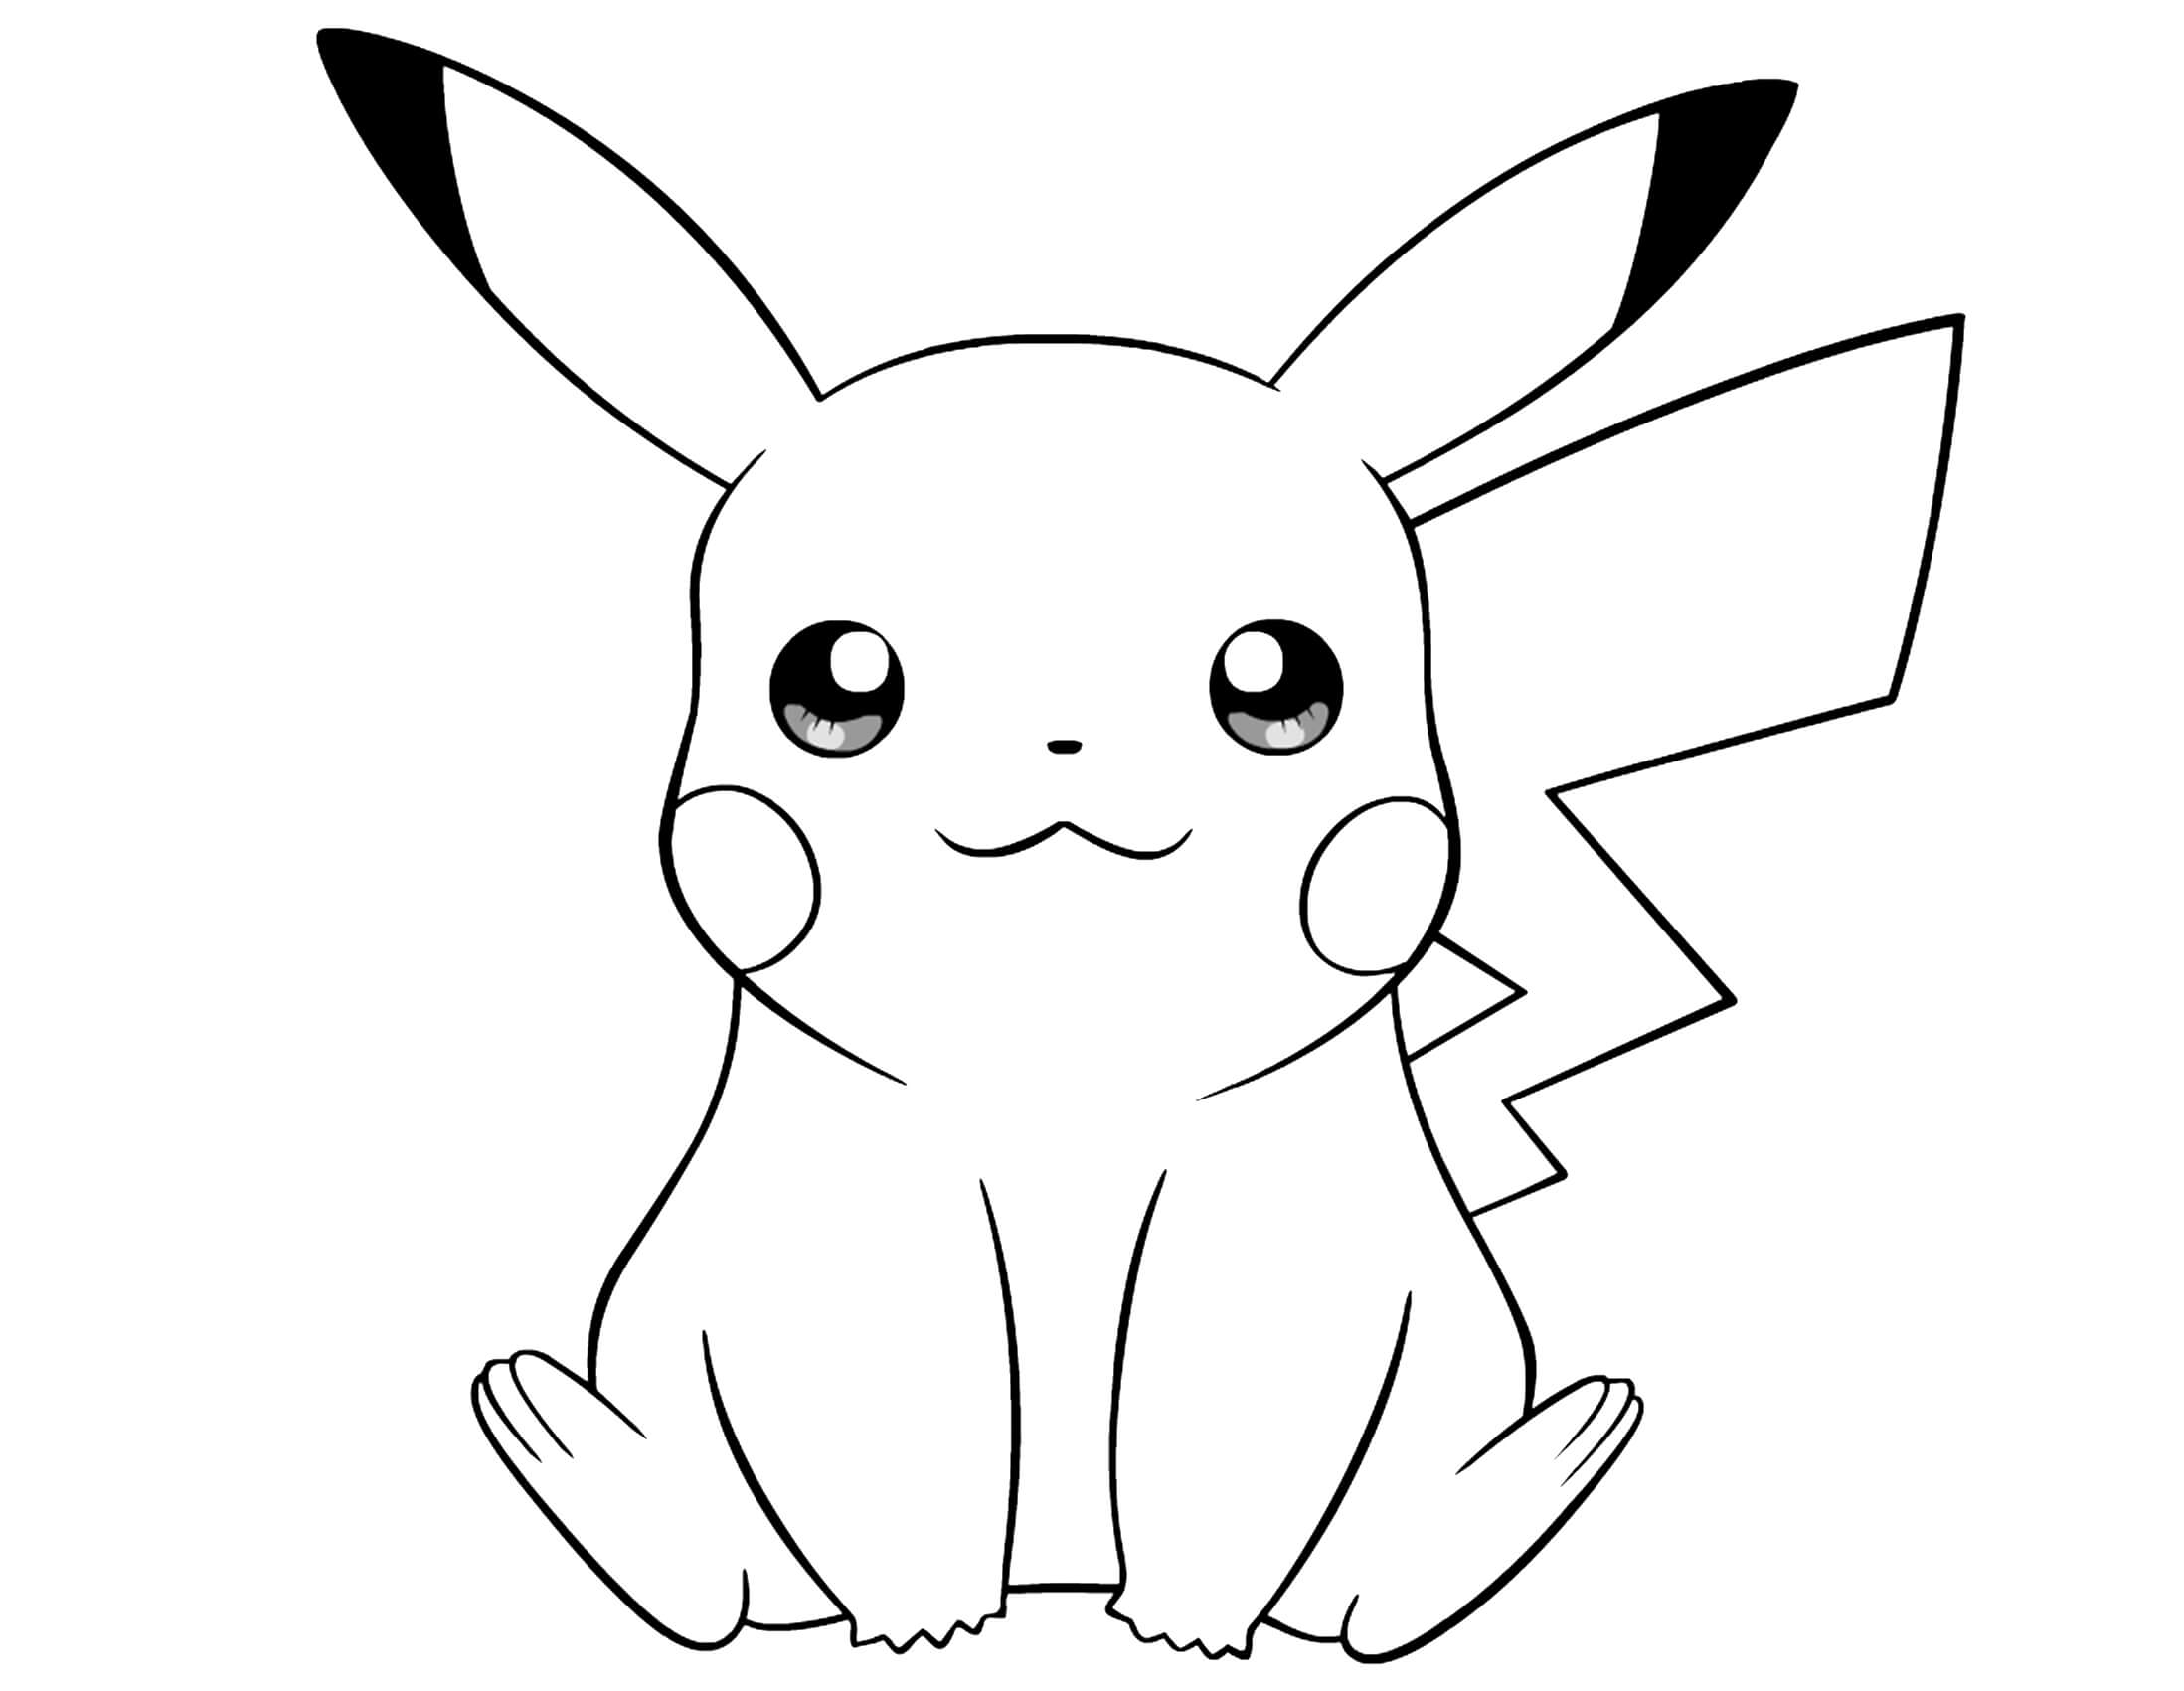 pikachu drawing coloring pages baby pikachu drawing at getdrawings free download pages pikachu coloring drawing